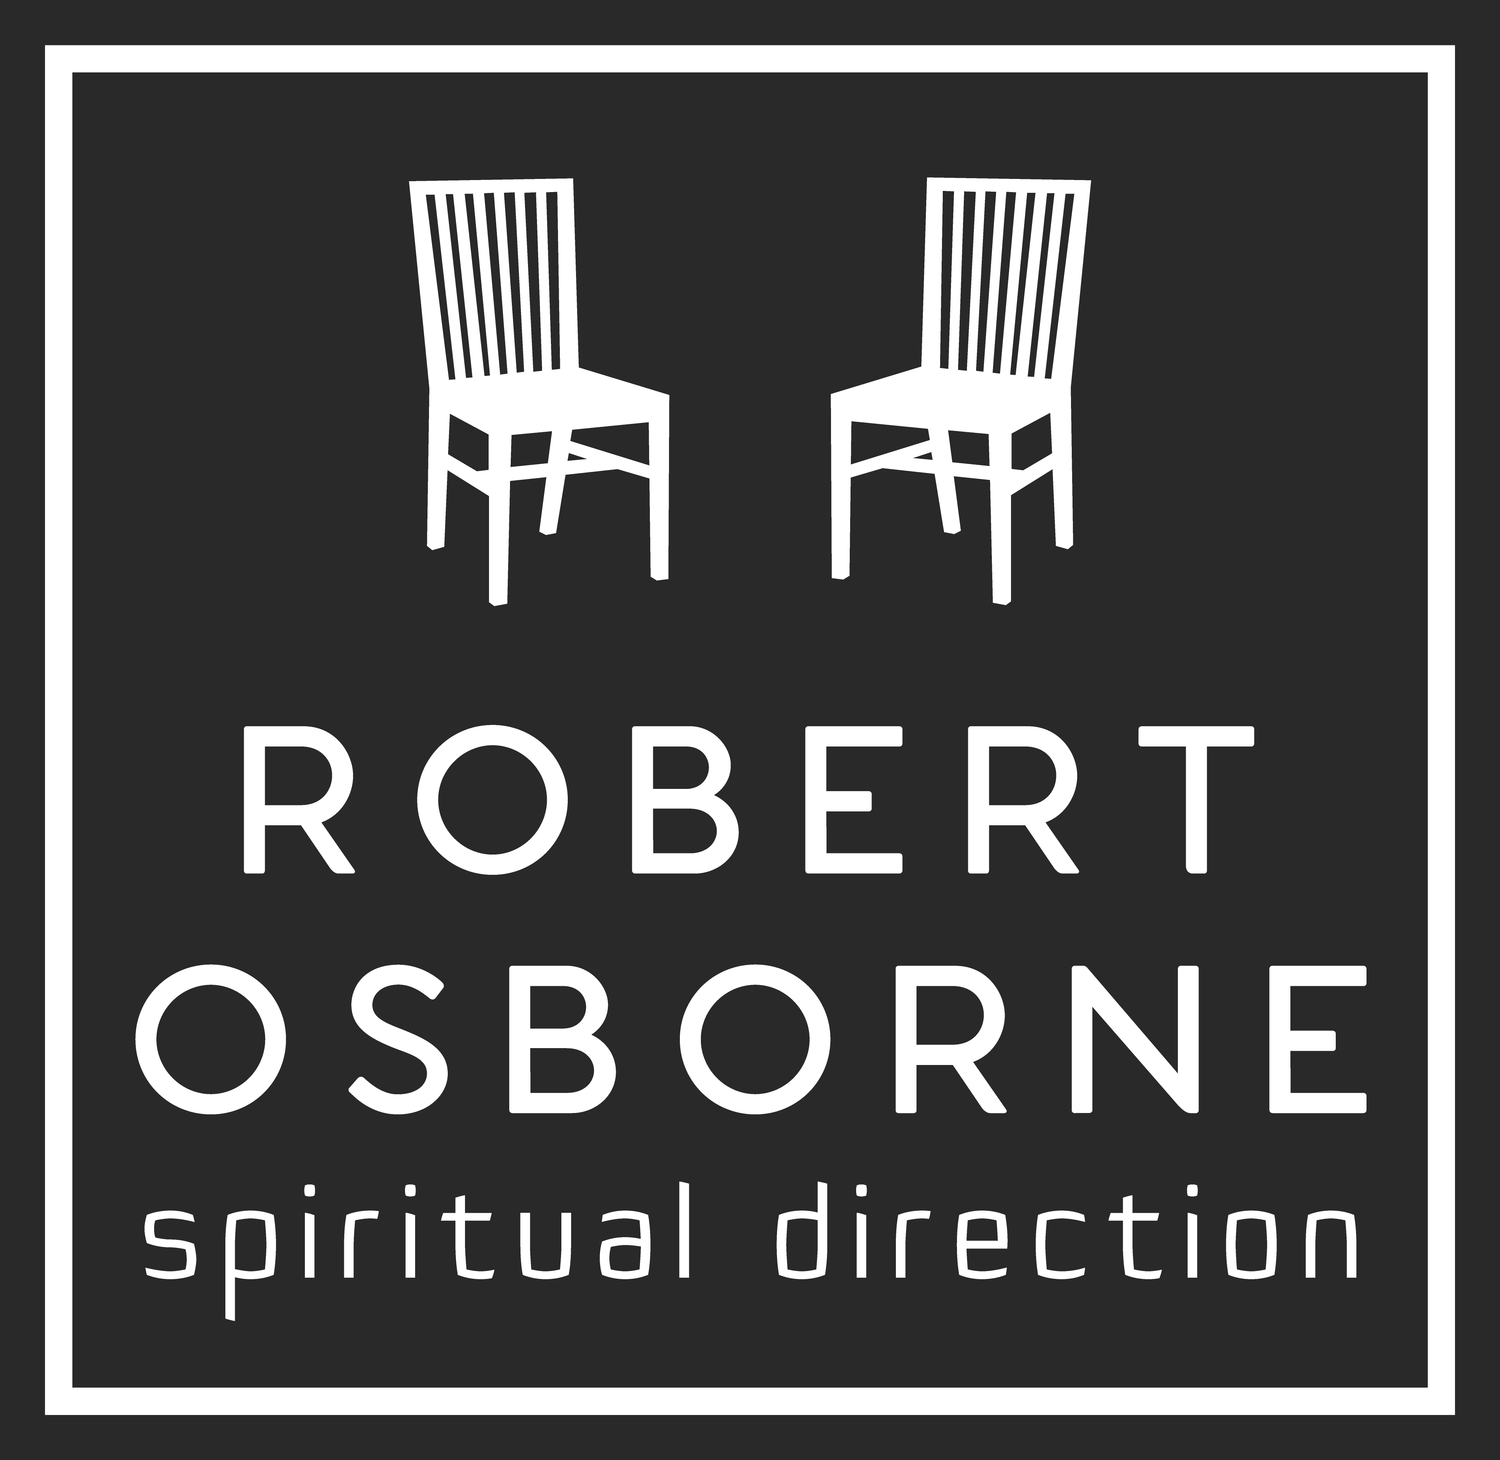 Robert Osborne Spiritual Direction